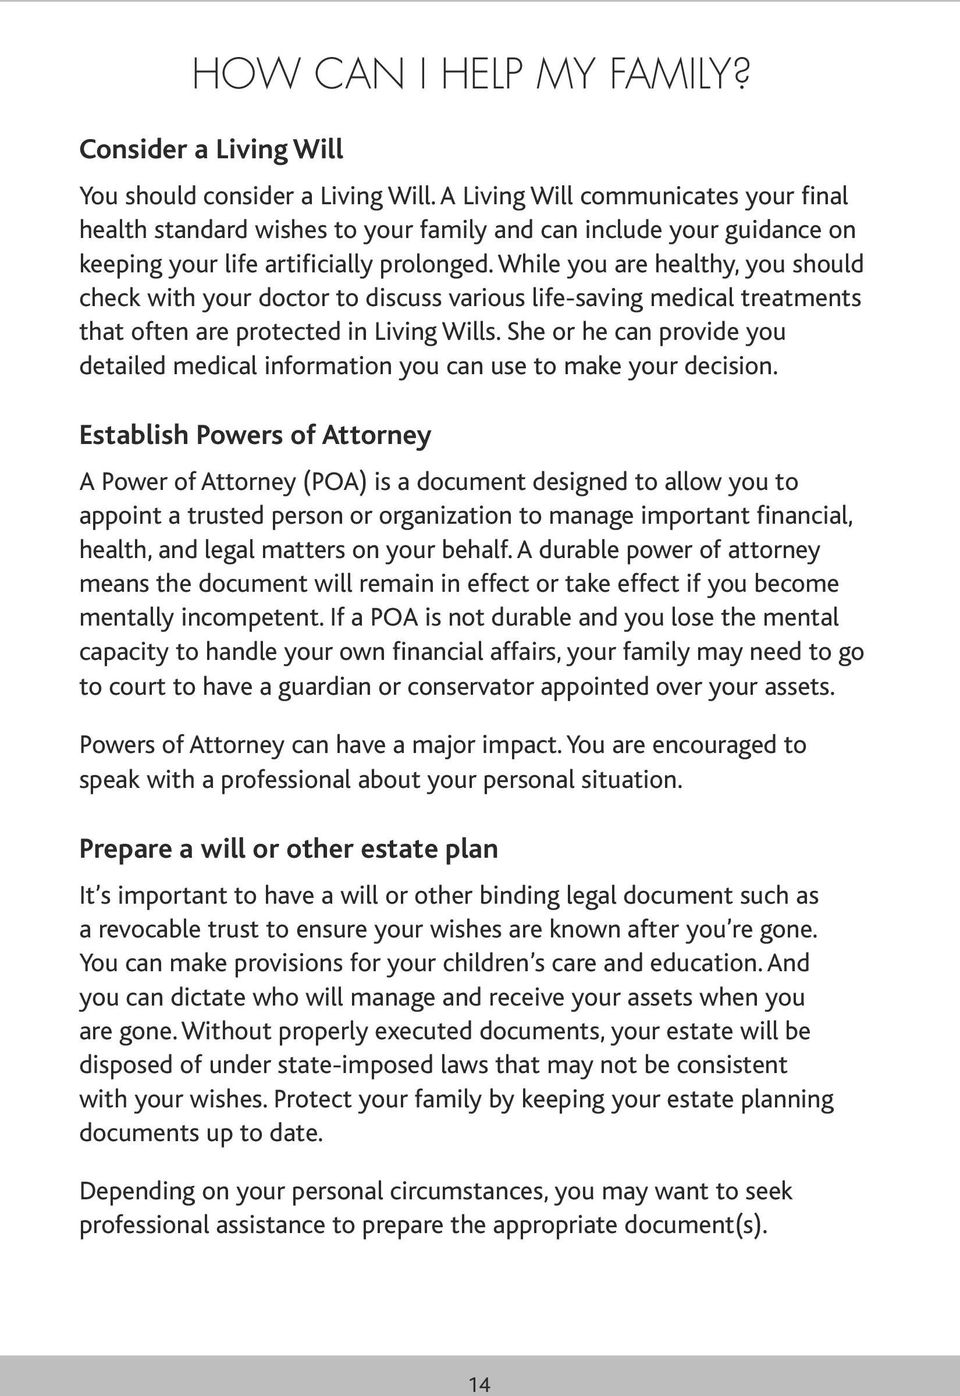 While you are healthy, you should check with your doctor to discuss various life-saving medical treatments that often are protected in Living Wills.